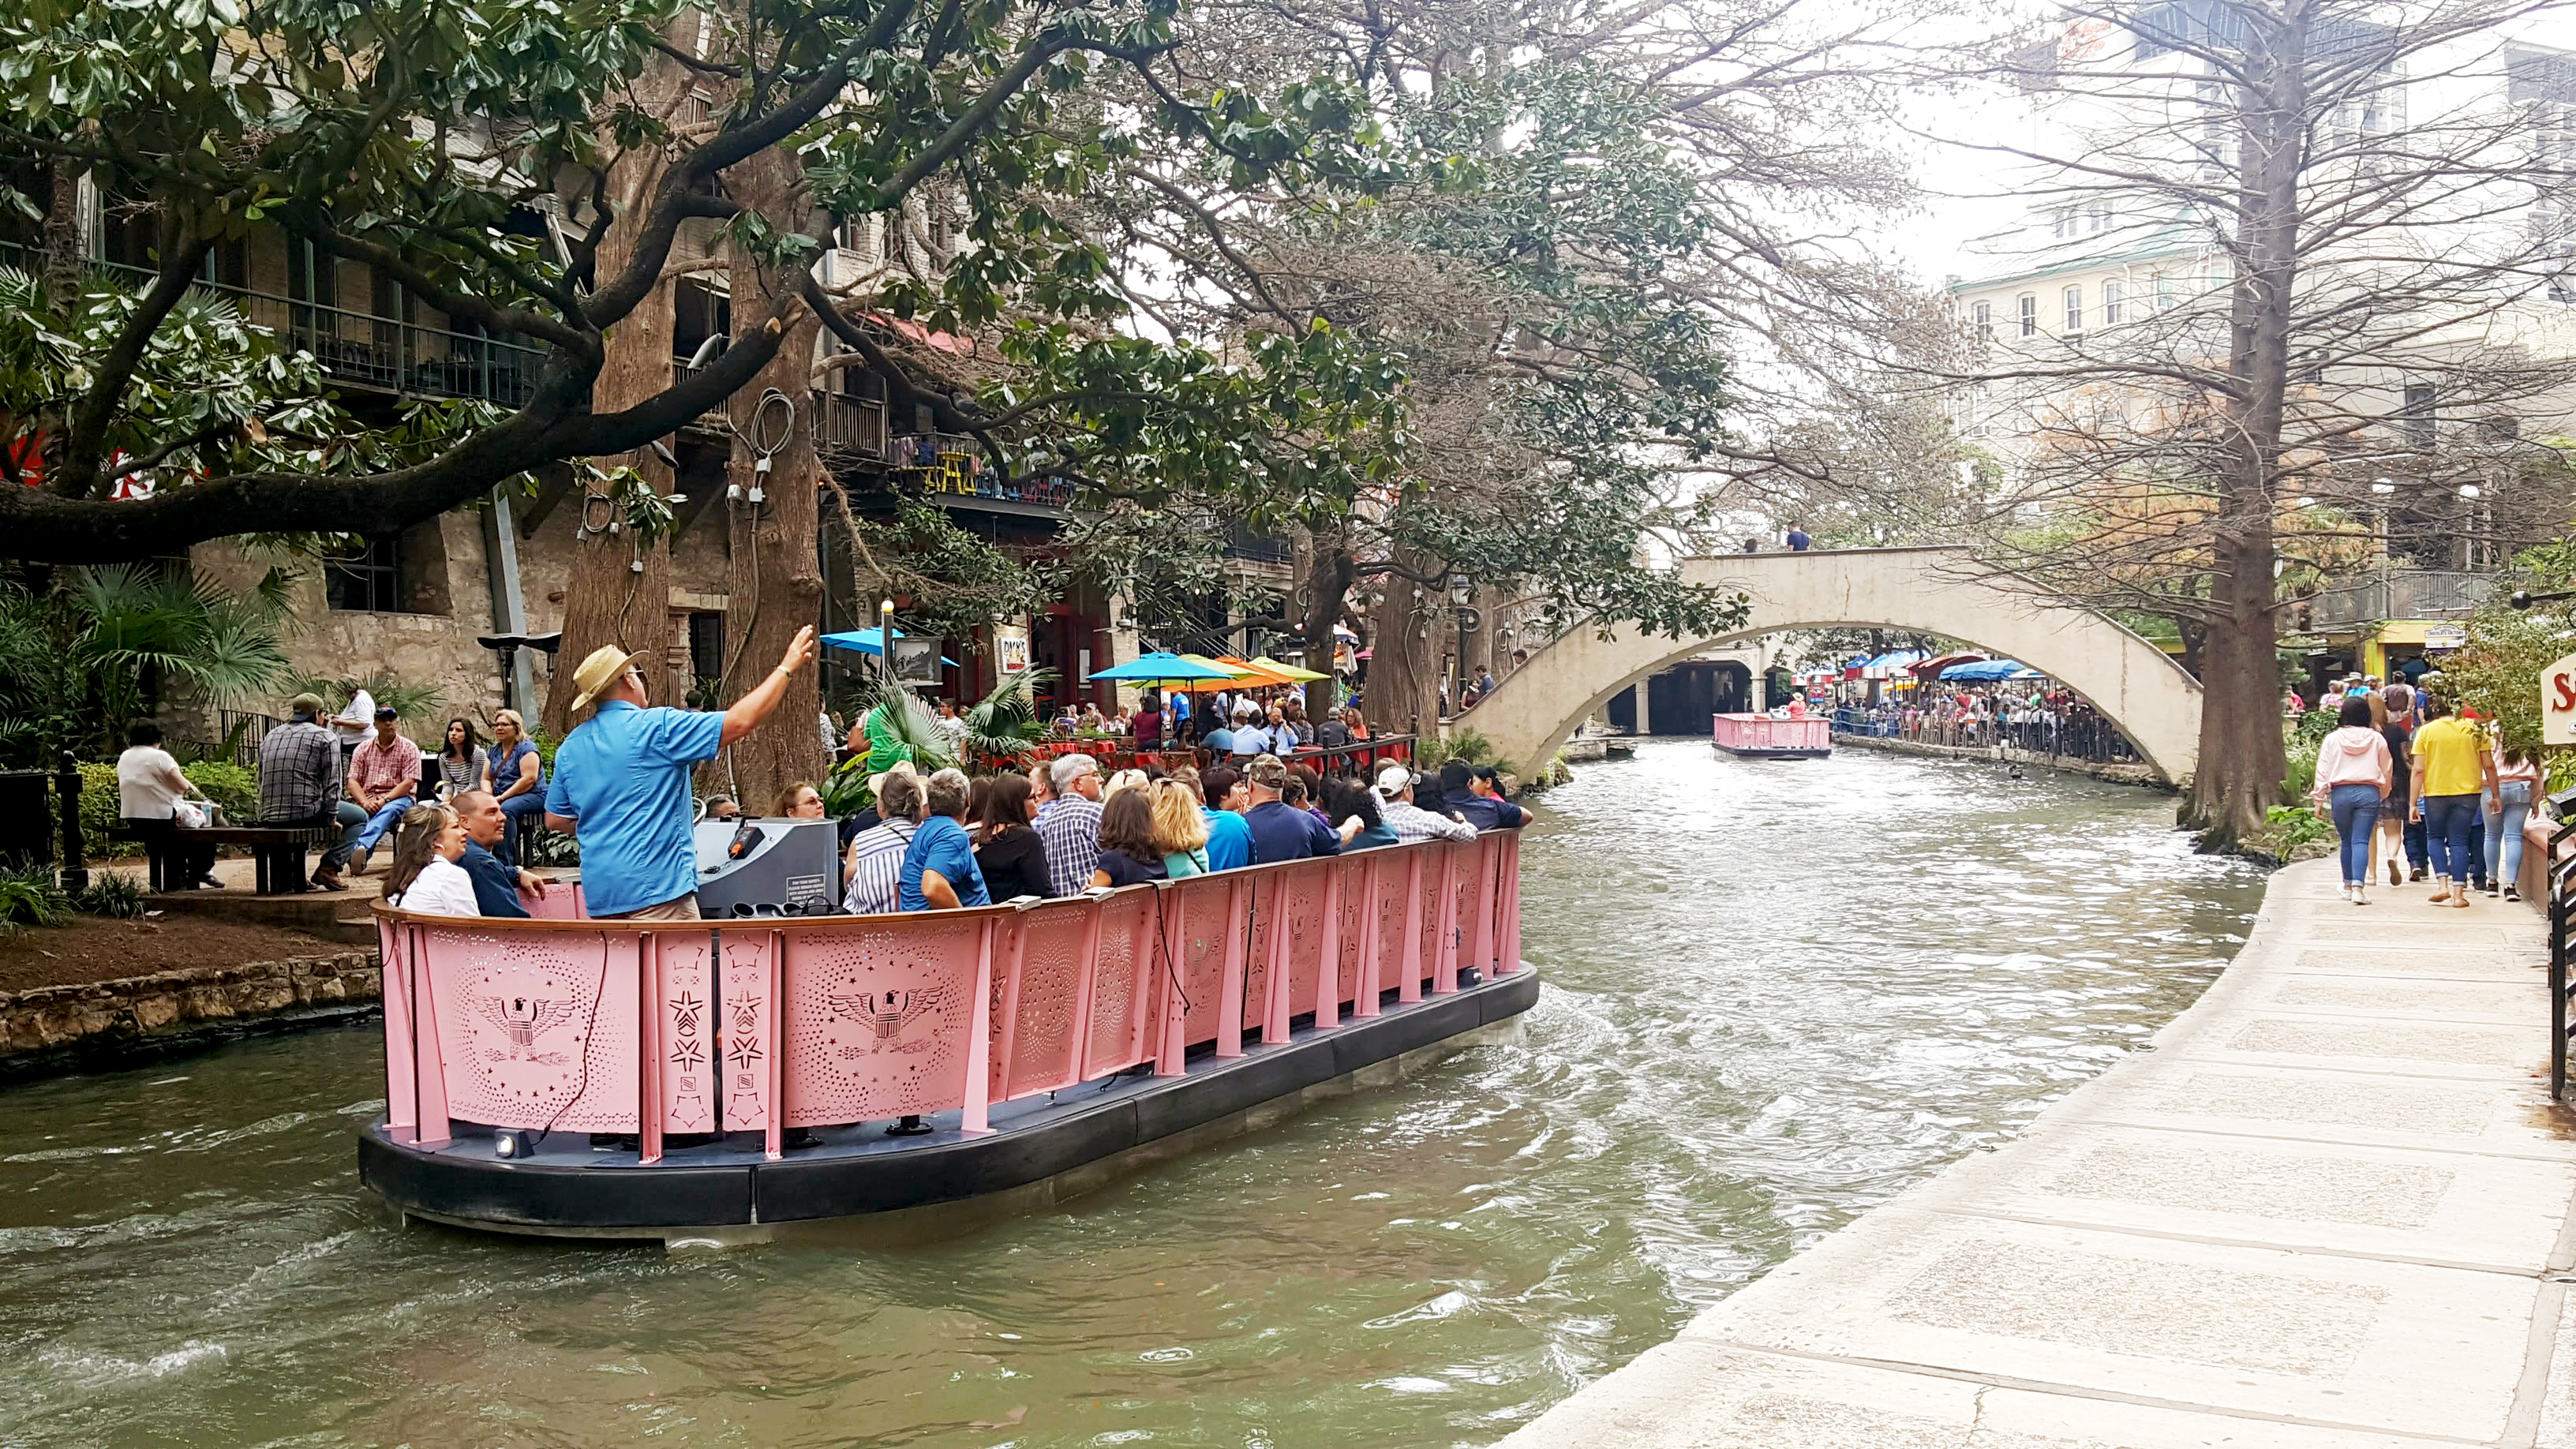 Narrated River Cruise along the River Walk in San Antonio Texas.